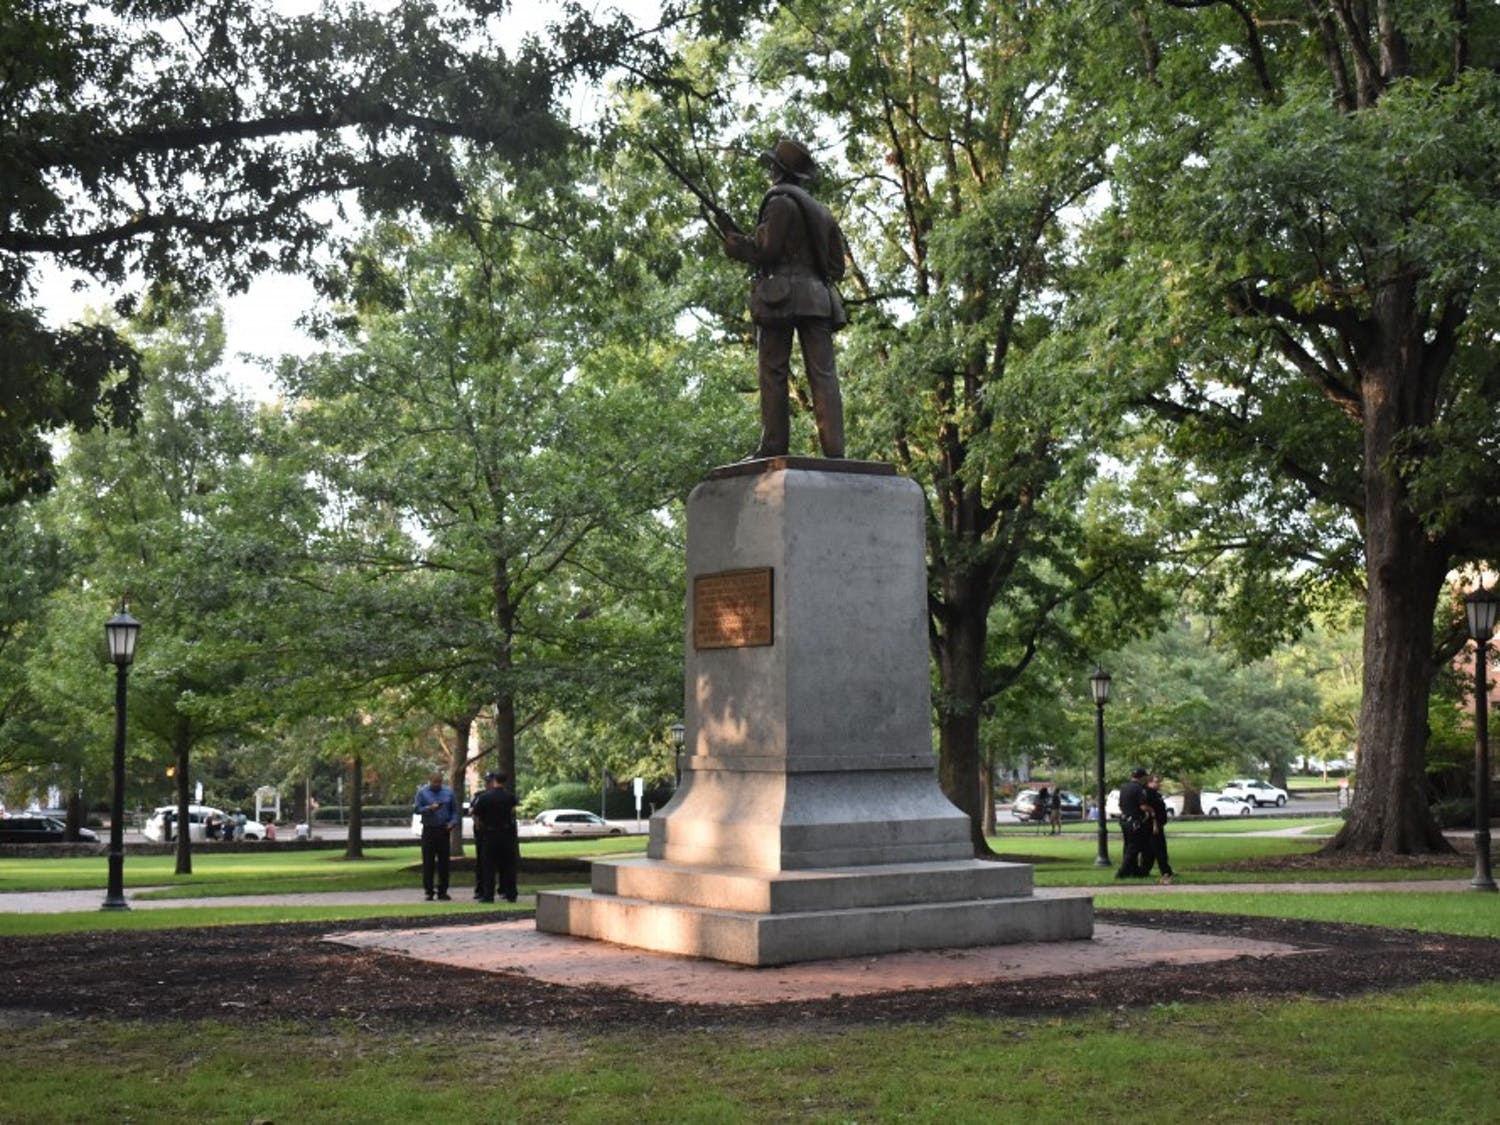 UNC's Confederate monument, Silent Sam, was toppled by protestors on Aug. 20.